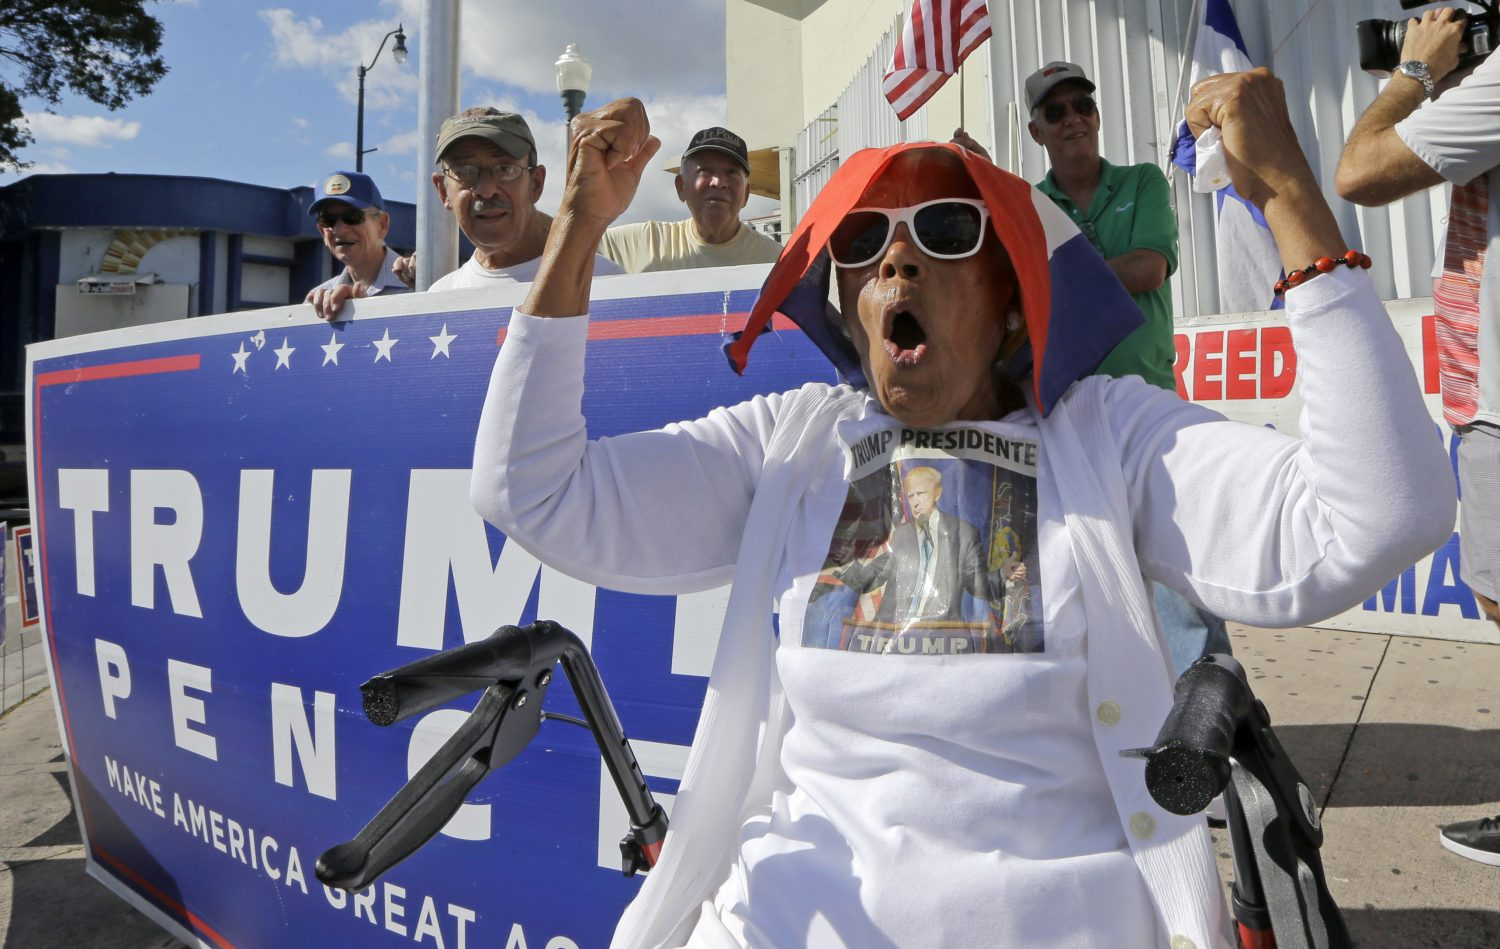 Cuban-American Ana Acosta Ayon chants pro Trump slogans, Friday, Jan. 20, 2017, in the Little Havana area in Miami, before President-elect Donald Trump is sworn in as the 45th president of the United States. (AP Photo/Alan Diaz)